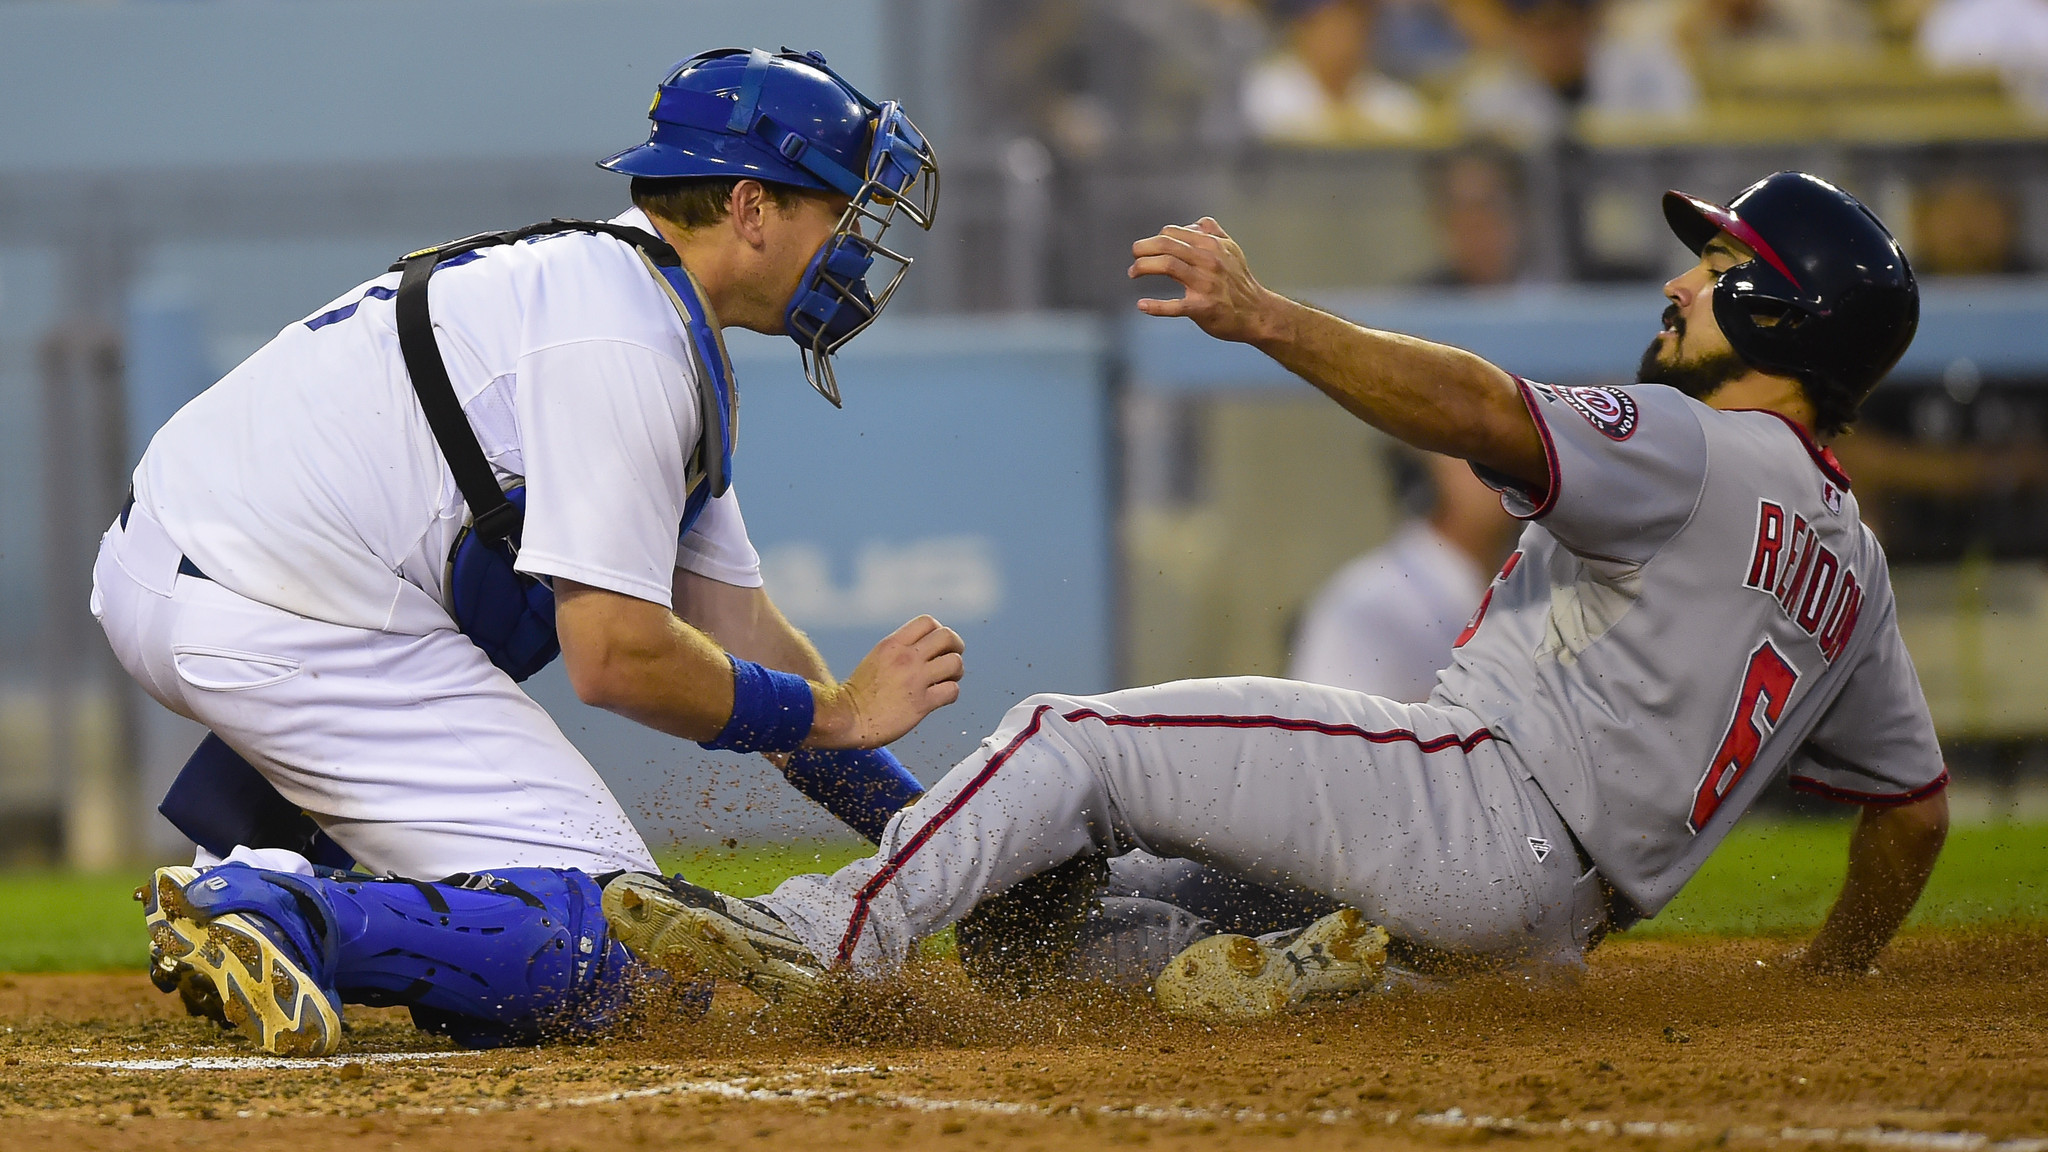 Dodgers can't keep up with Nationals in 6-4 loss